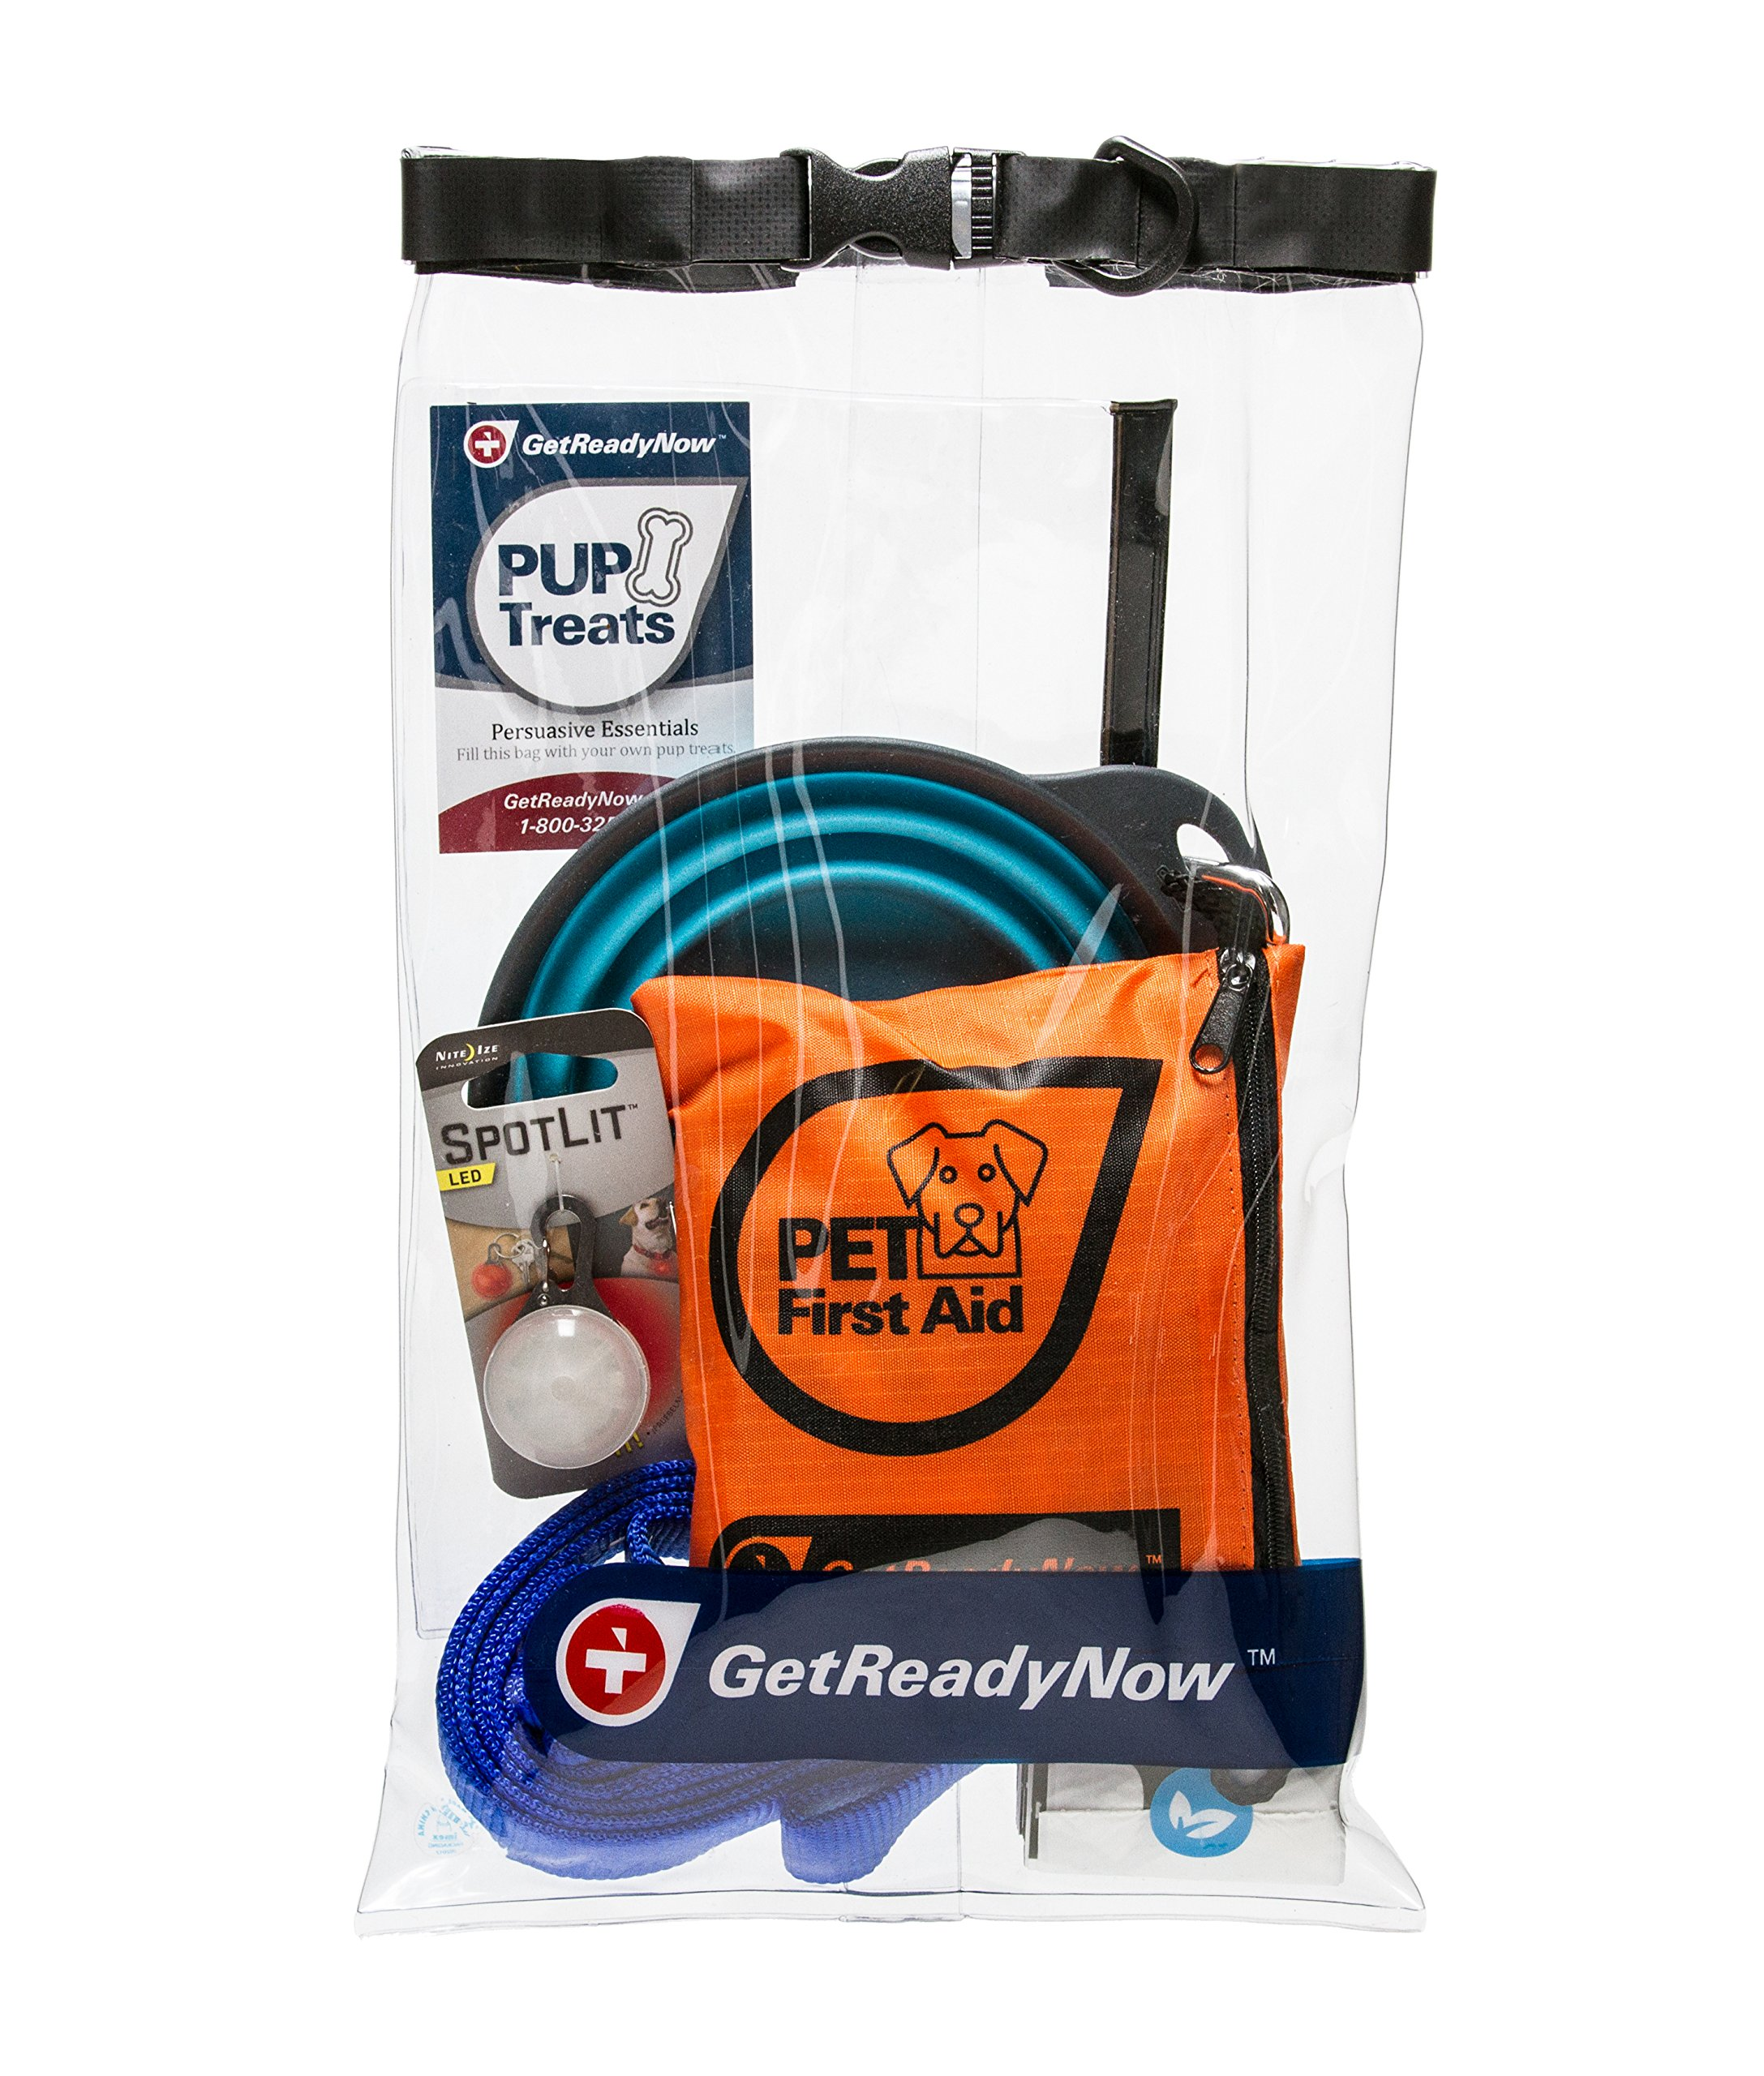 GETREADYNOW Pups & Peeps Essential Pet First Aid Kit with Leash and Treats - Emergency Survival Kit + Deluxe Supplies to Rescue Pets and Keep Your Four-Legged Friend Safe on The Road, Dog Camping Gear by GETREADYNOW